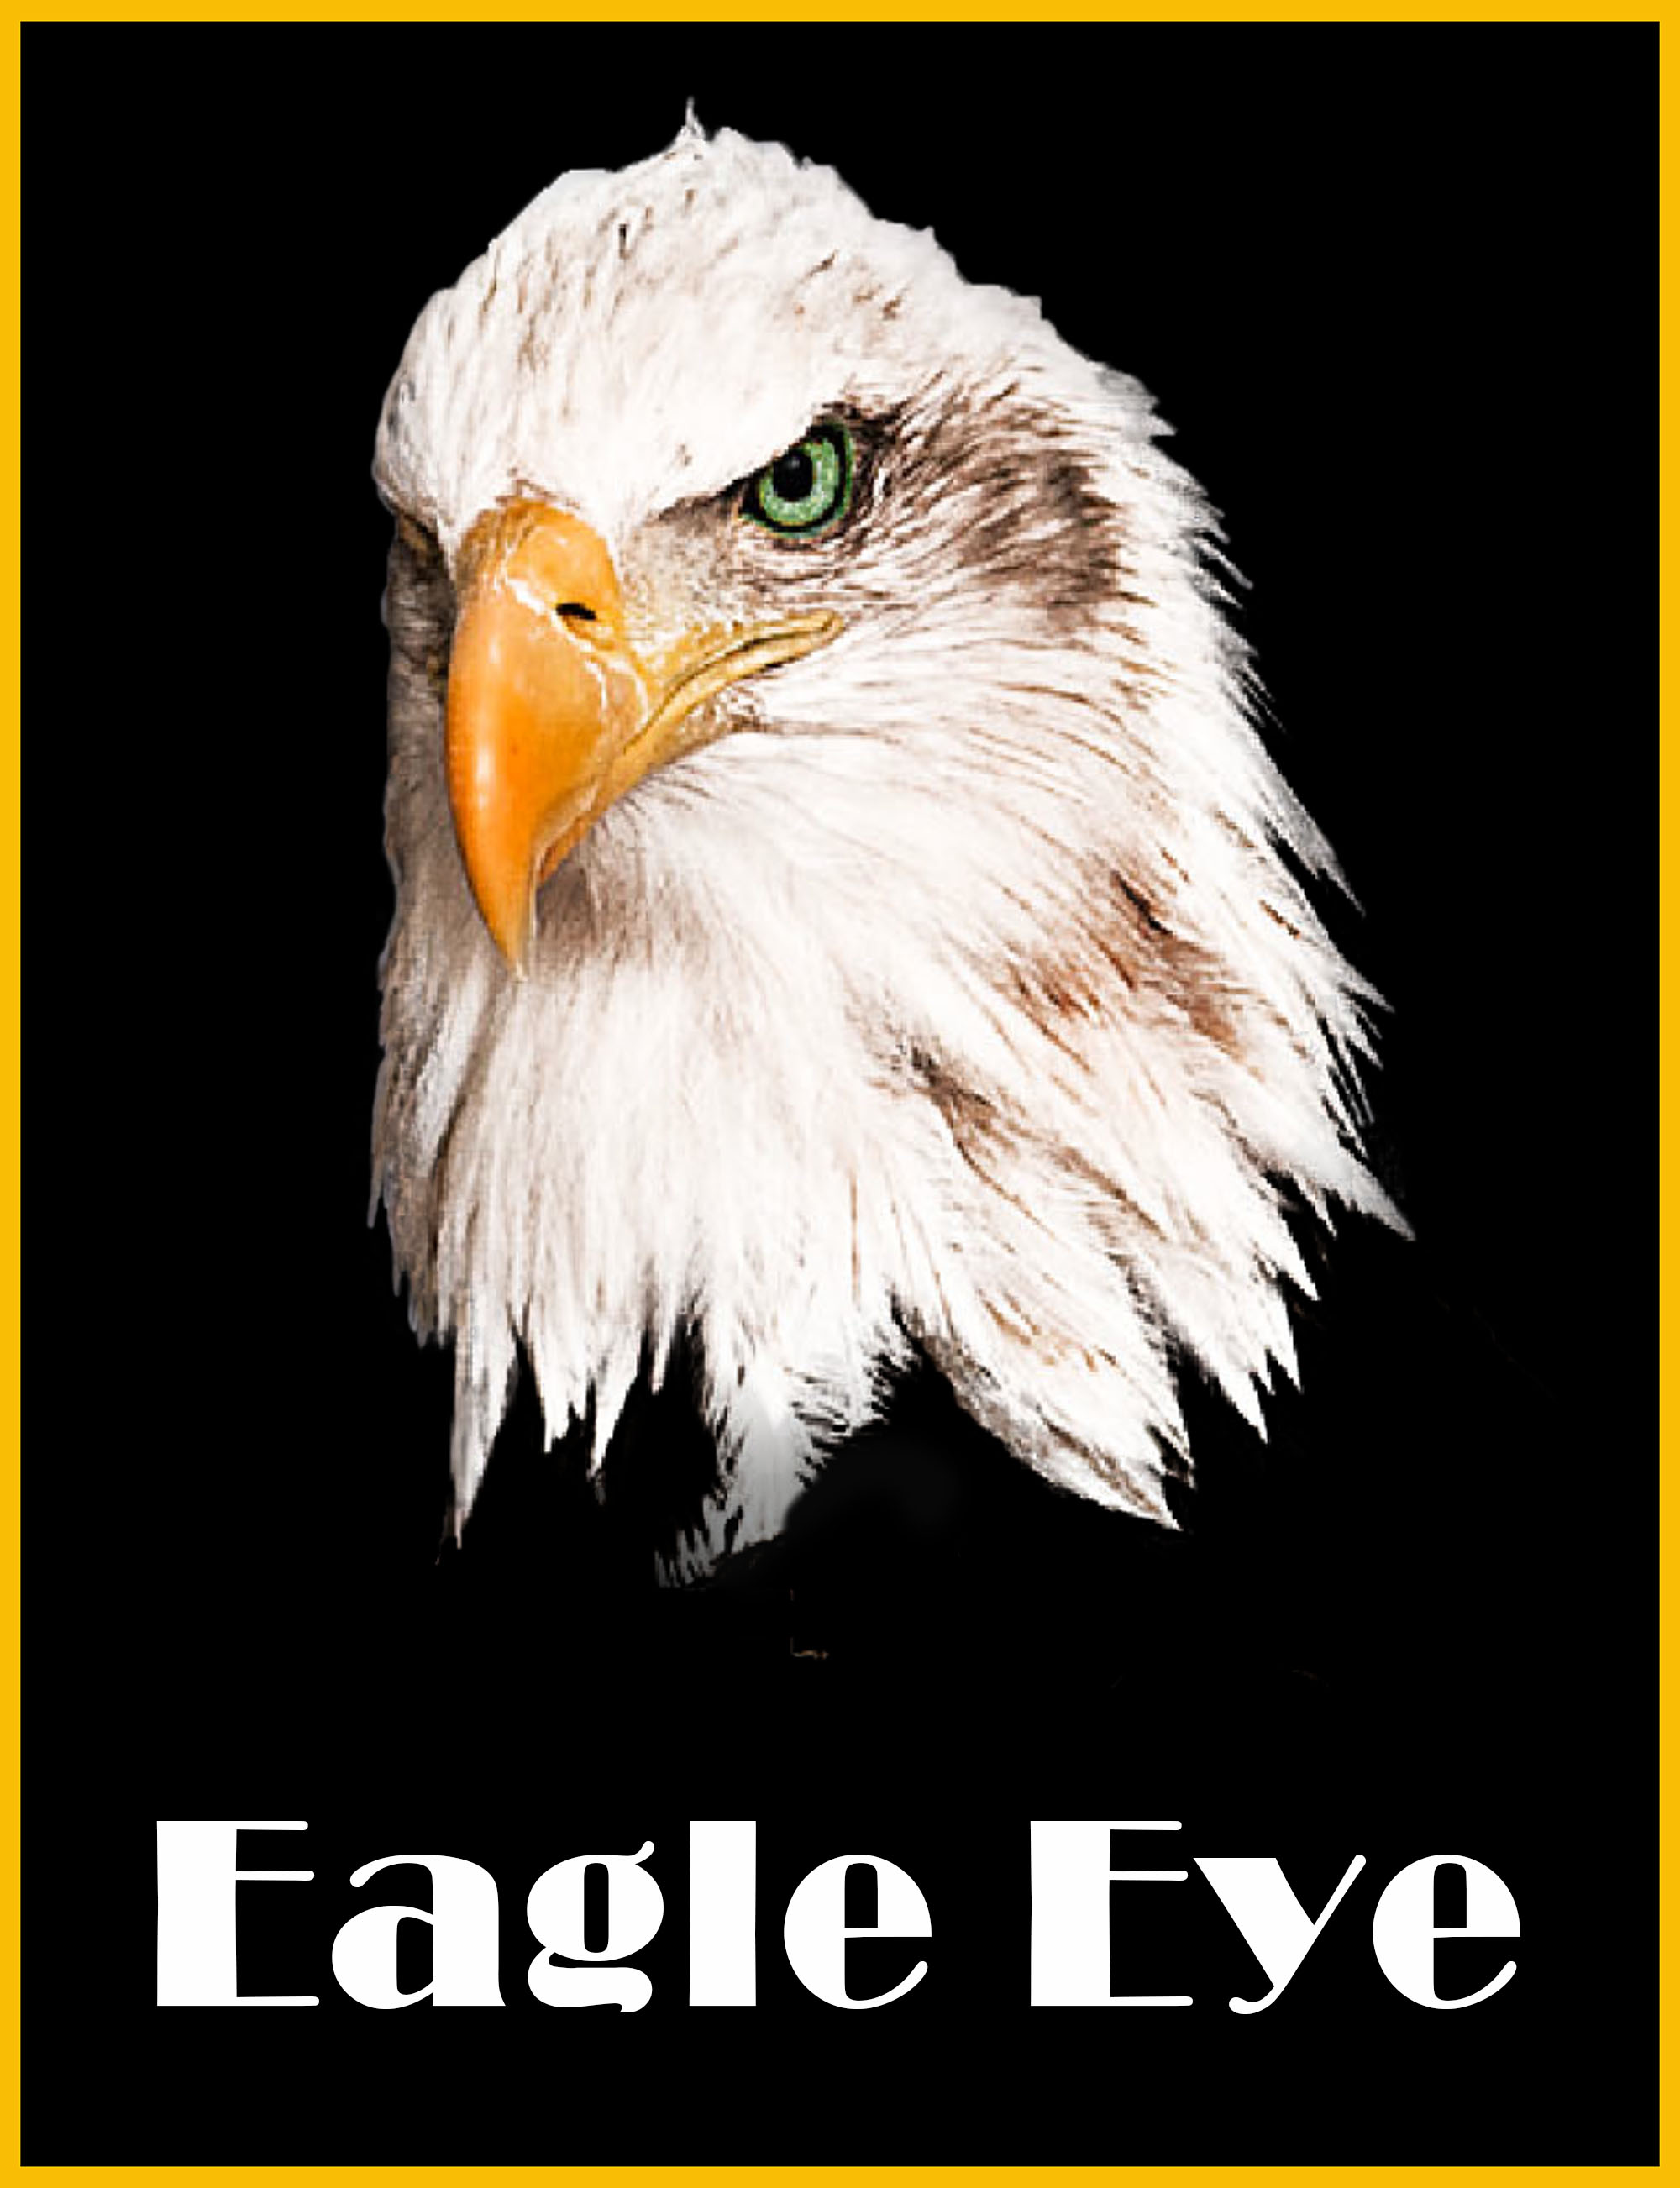 Eagle Eye Wines